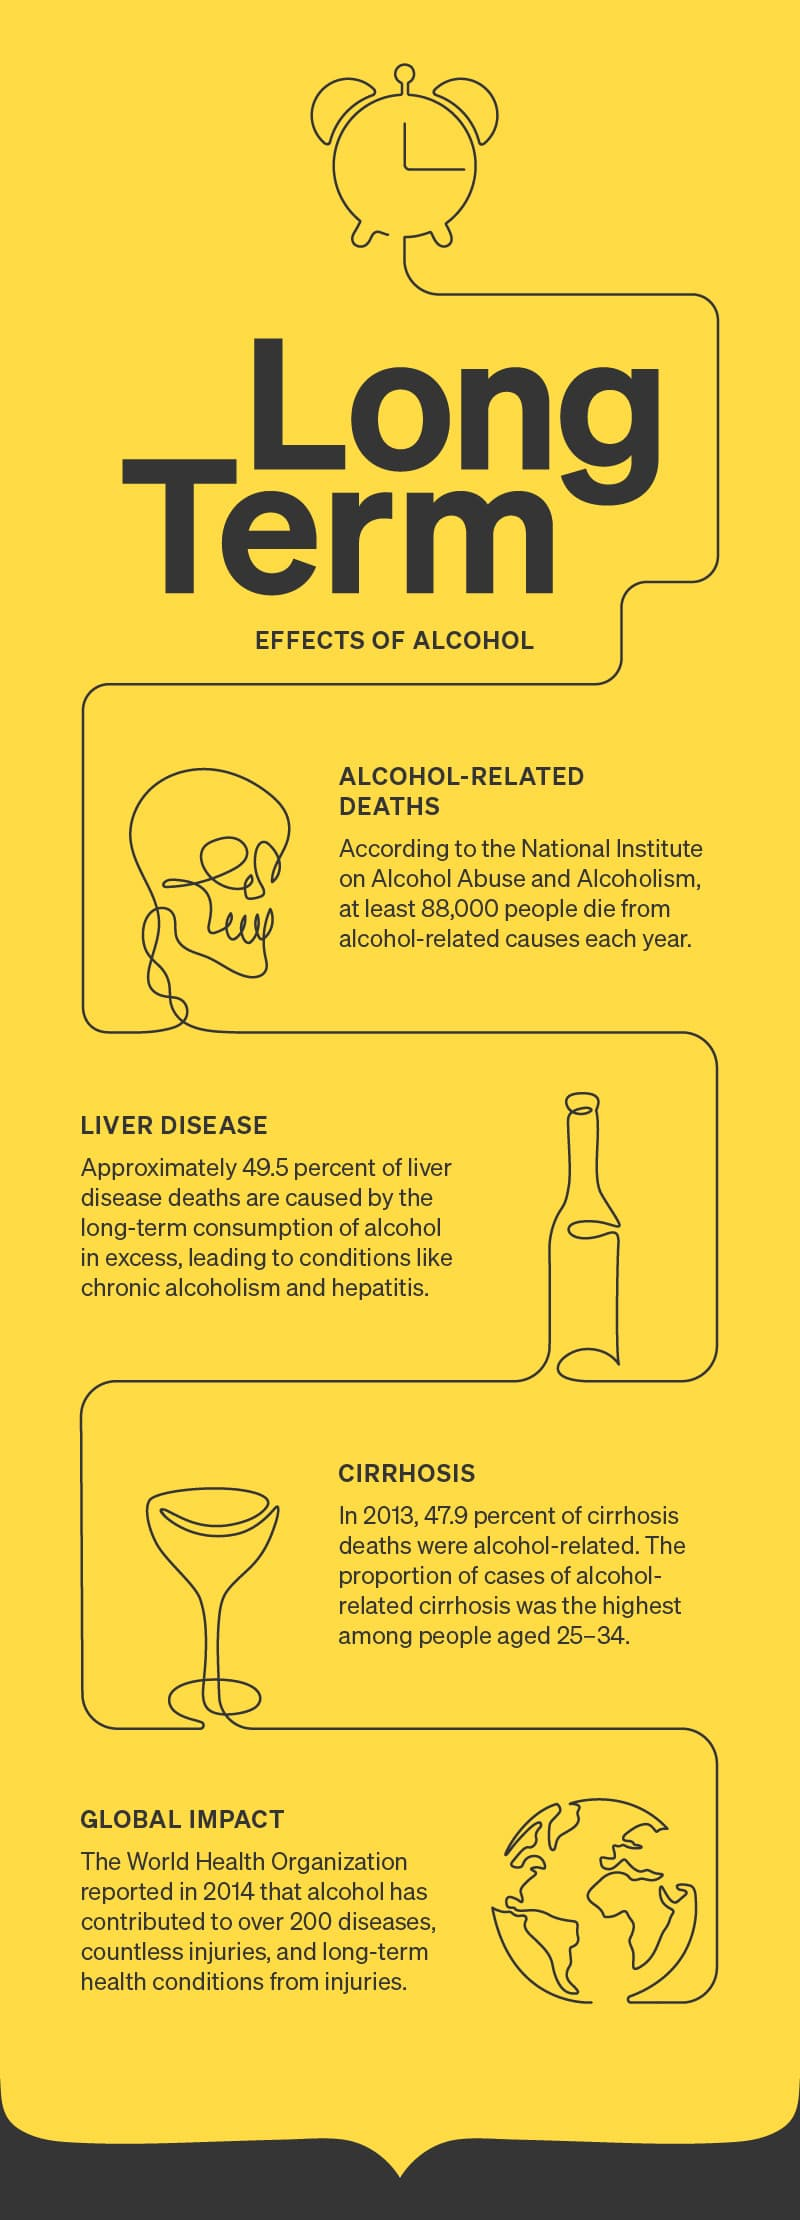 An infographic showing the longterm effects of drinking too much alcohol.